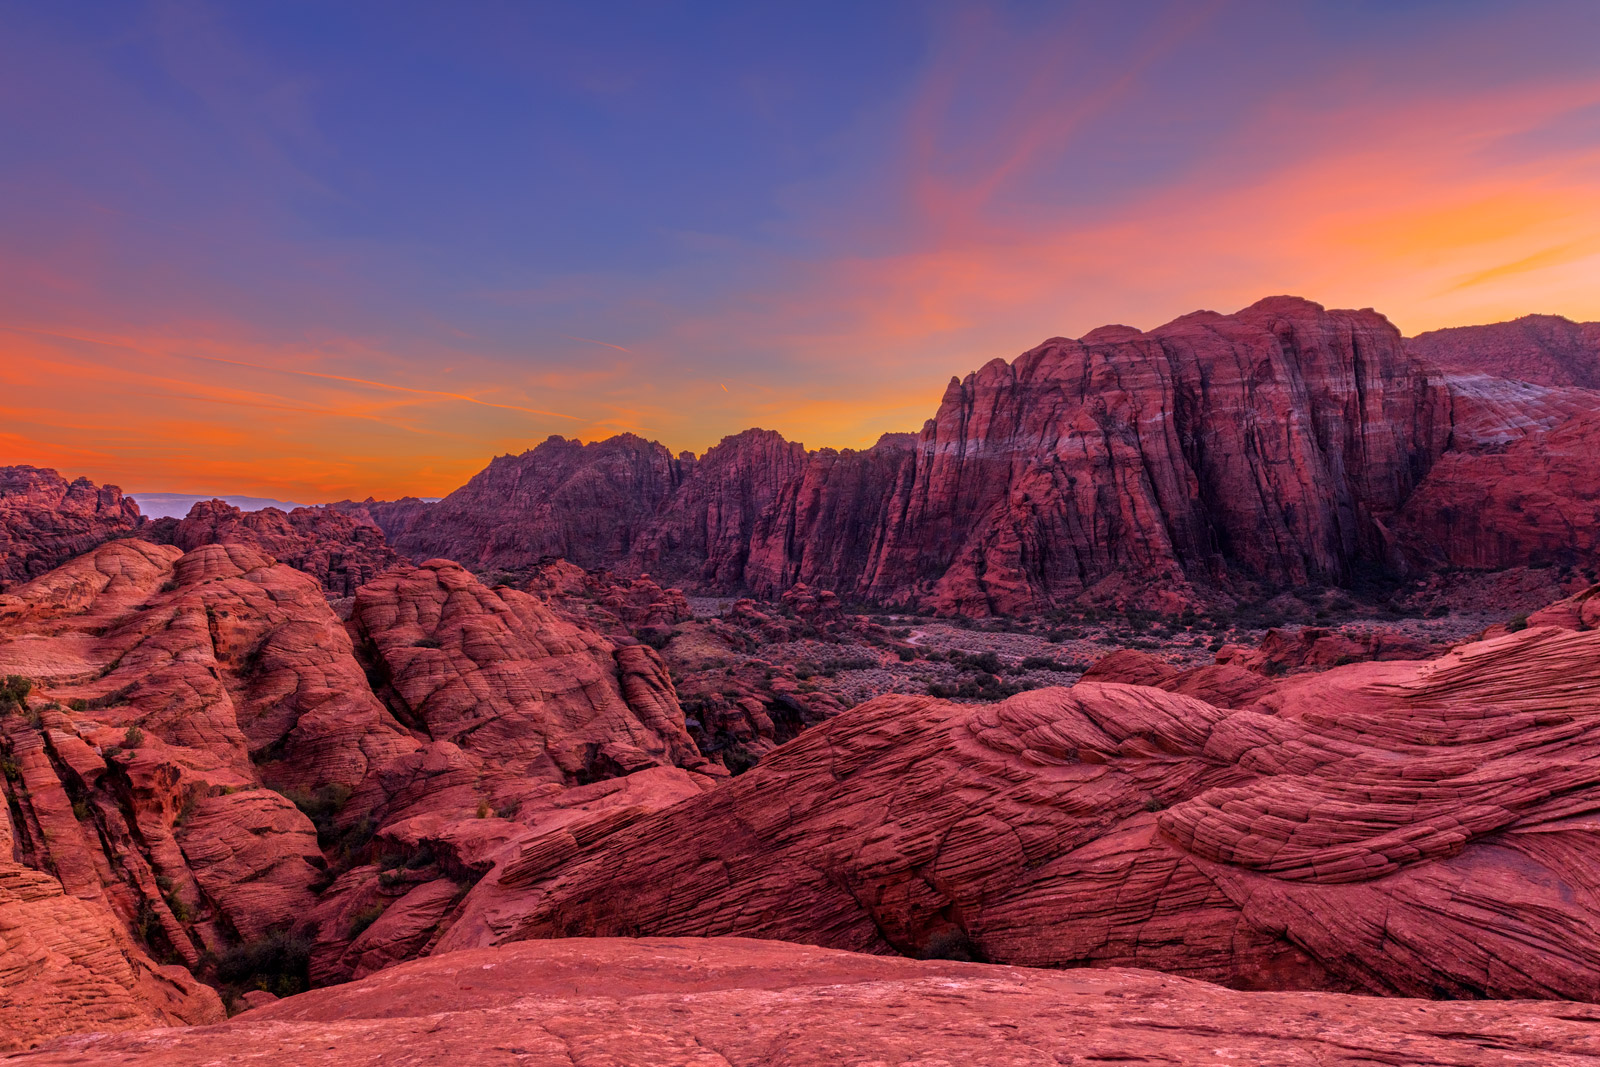 Utah, Snow Canyon, Sunset, Red Rock, limited edition, photograph, fine art, landscape, photo